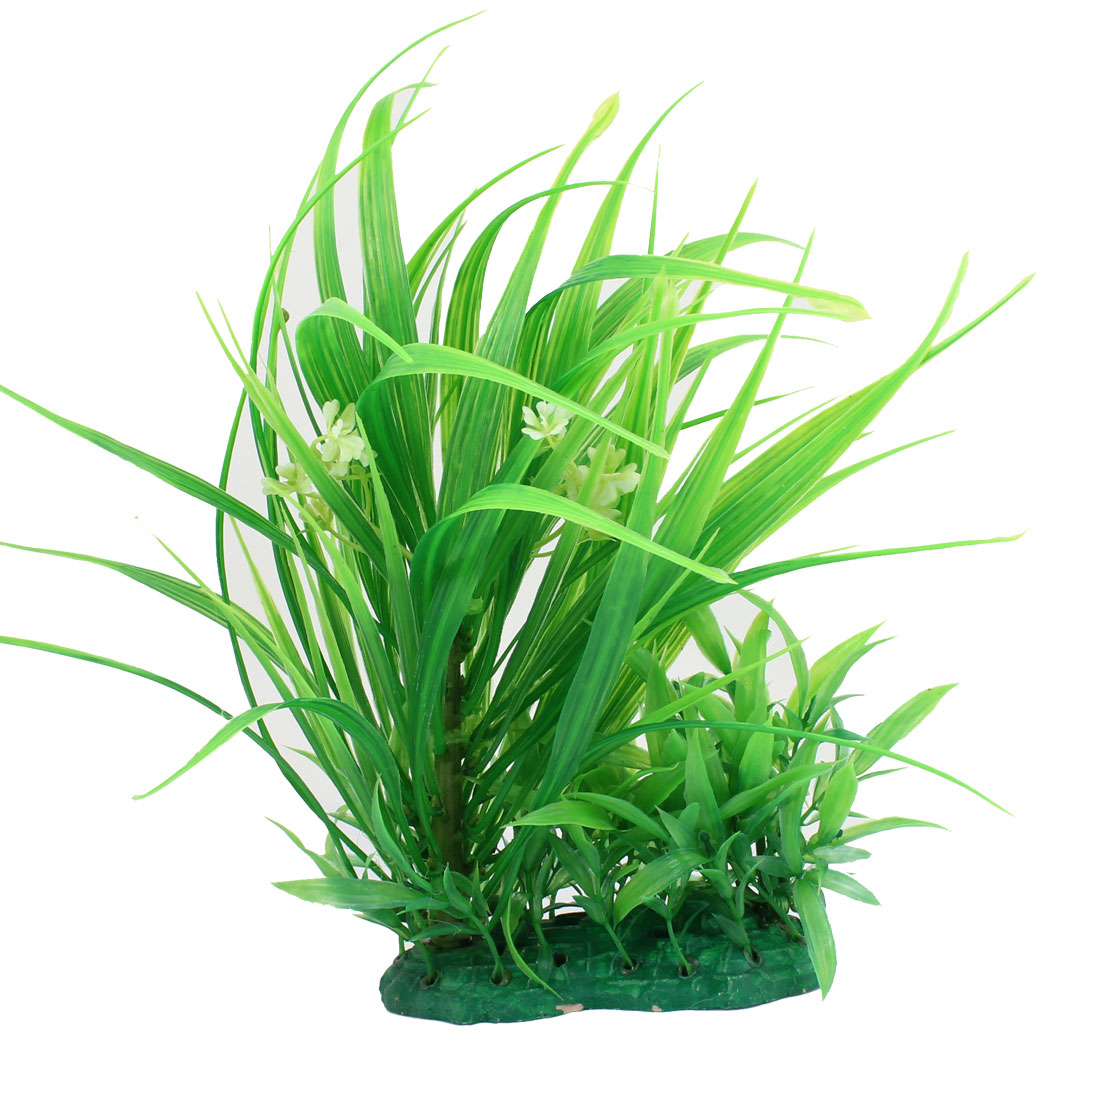 30cm High Aquarium Fish Tank Aquascaping Plastic Plant Grass Green